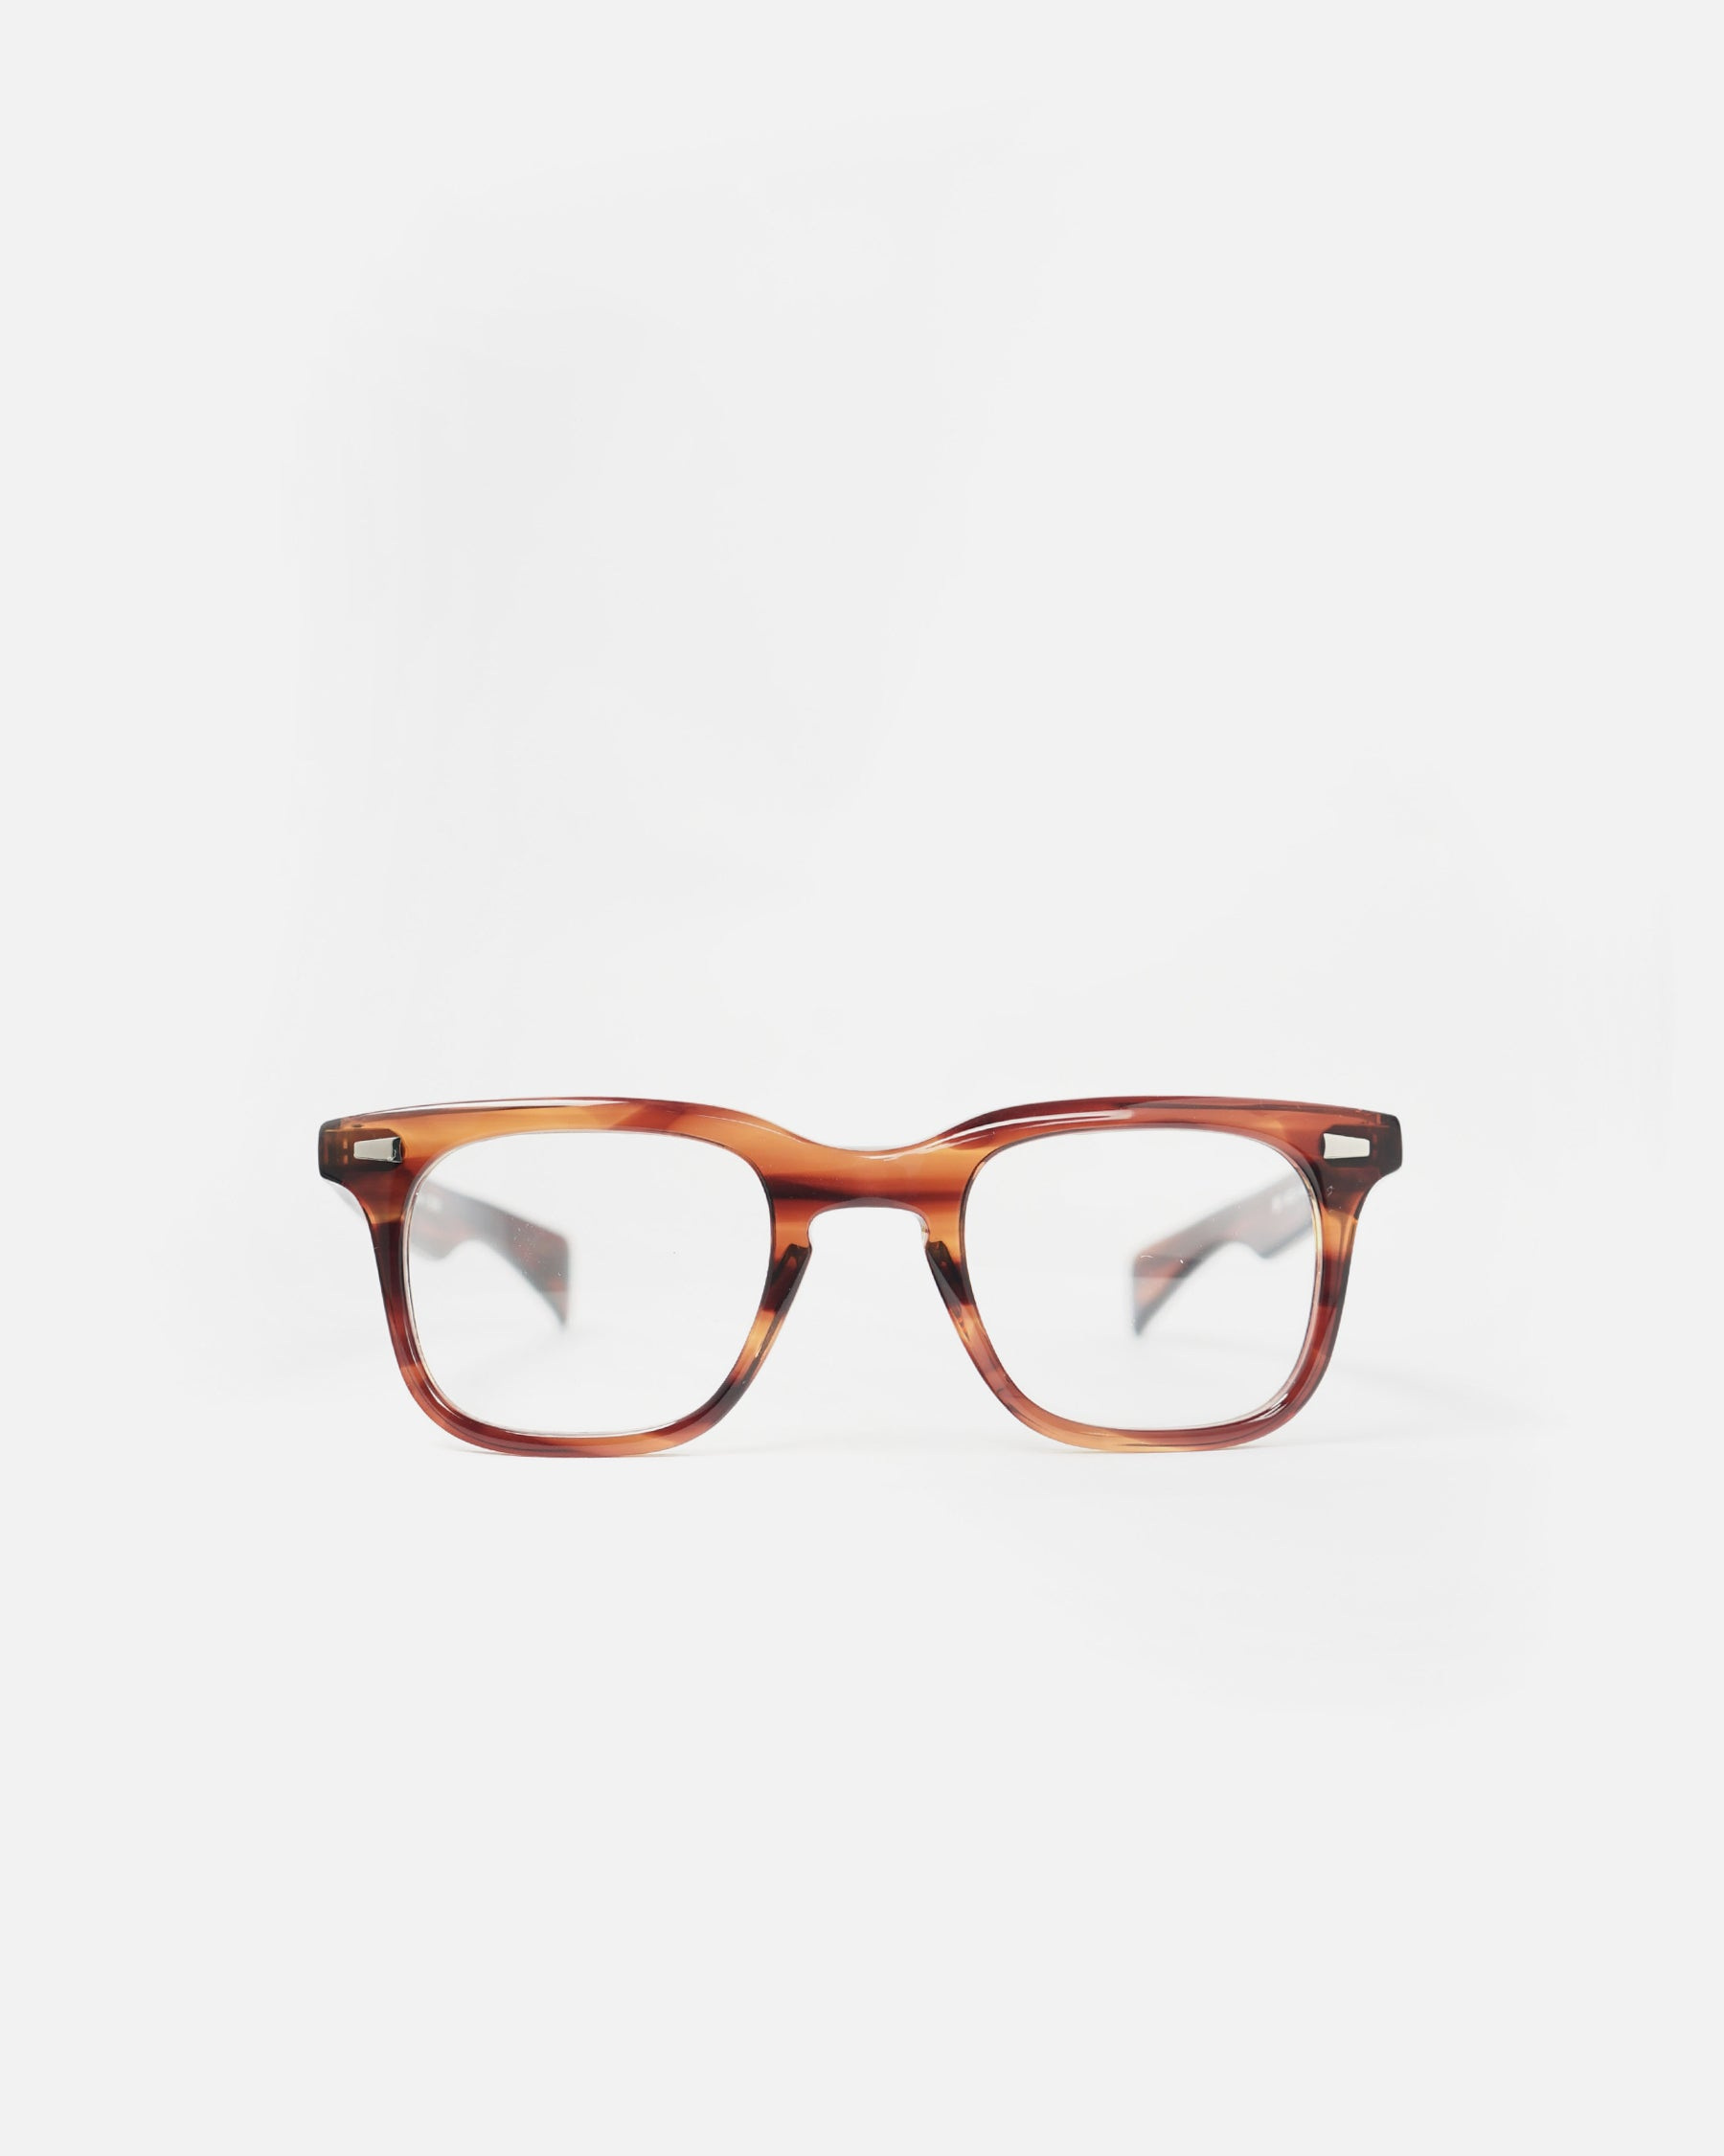 SKY Frame Brown Tortoise